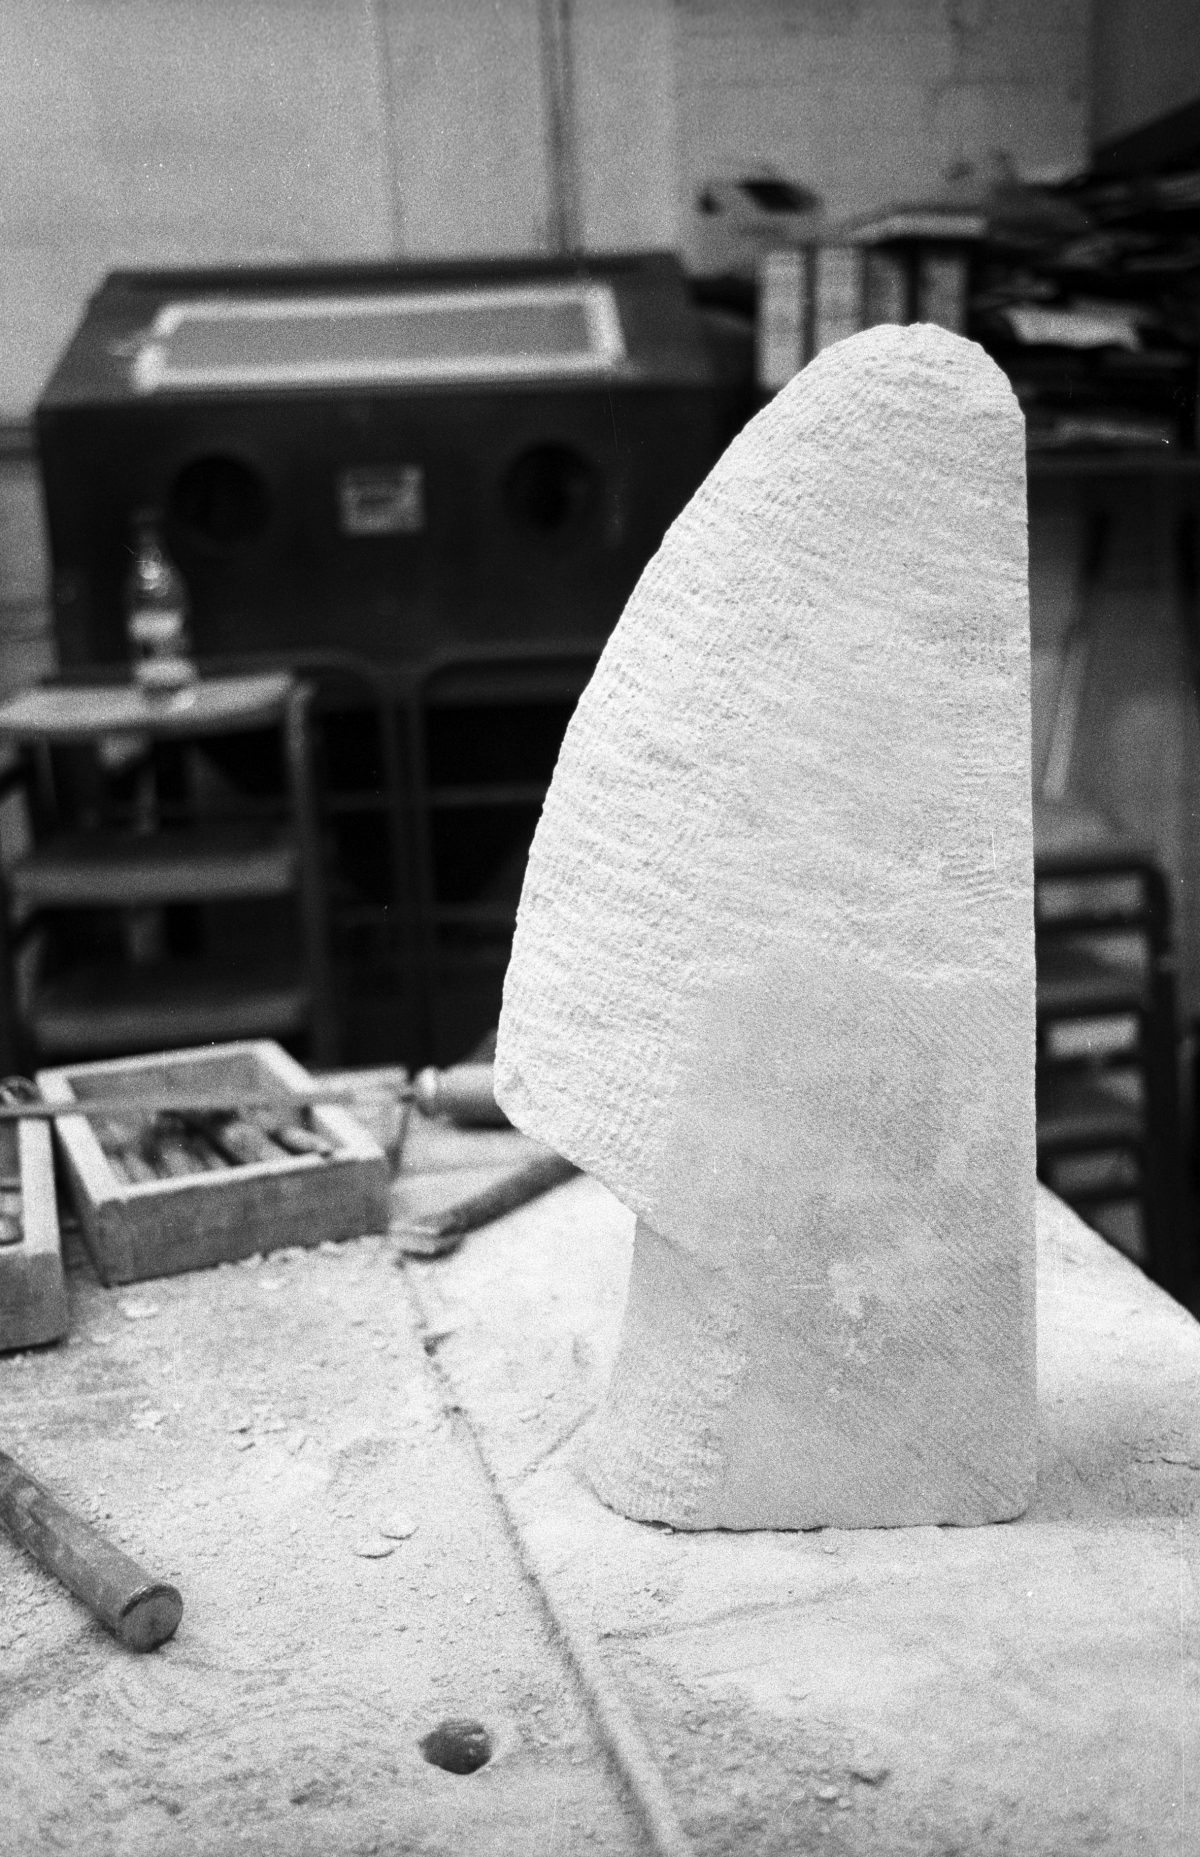 Stone in progress, sculpture, rock, ch3, bw